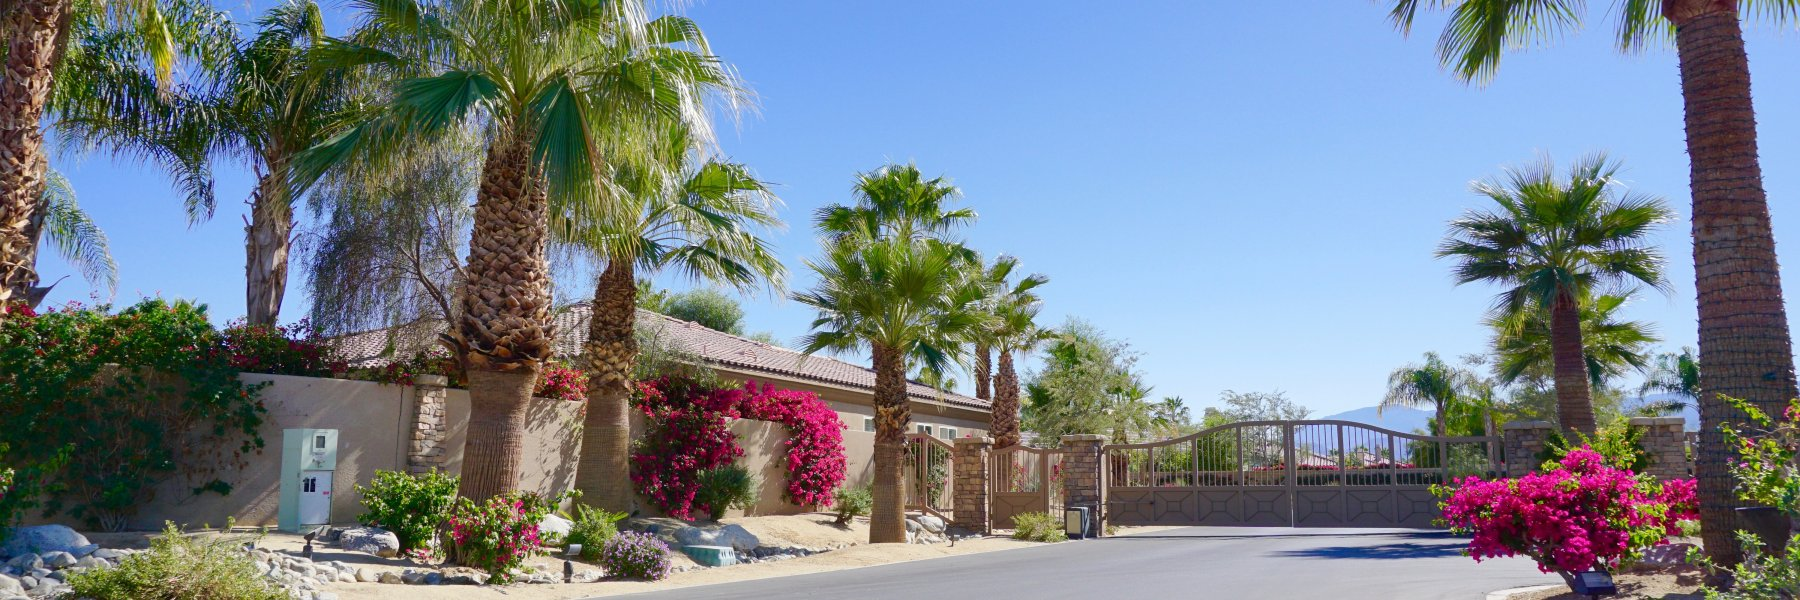 Desert River Estates is a community of homes in Indio California